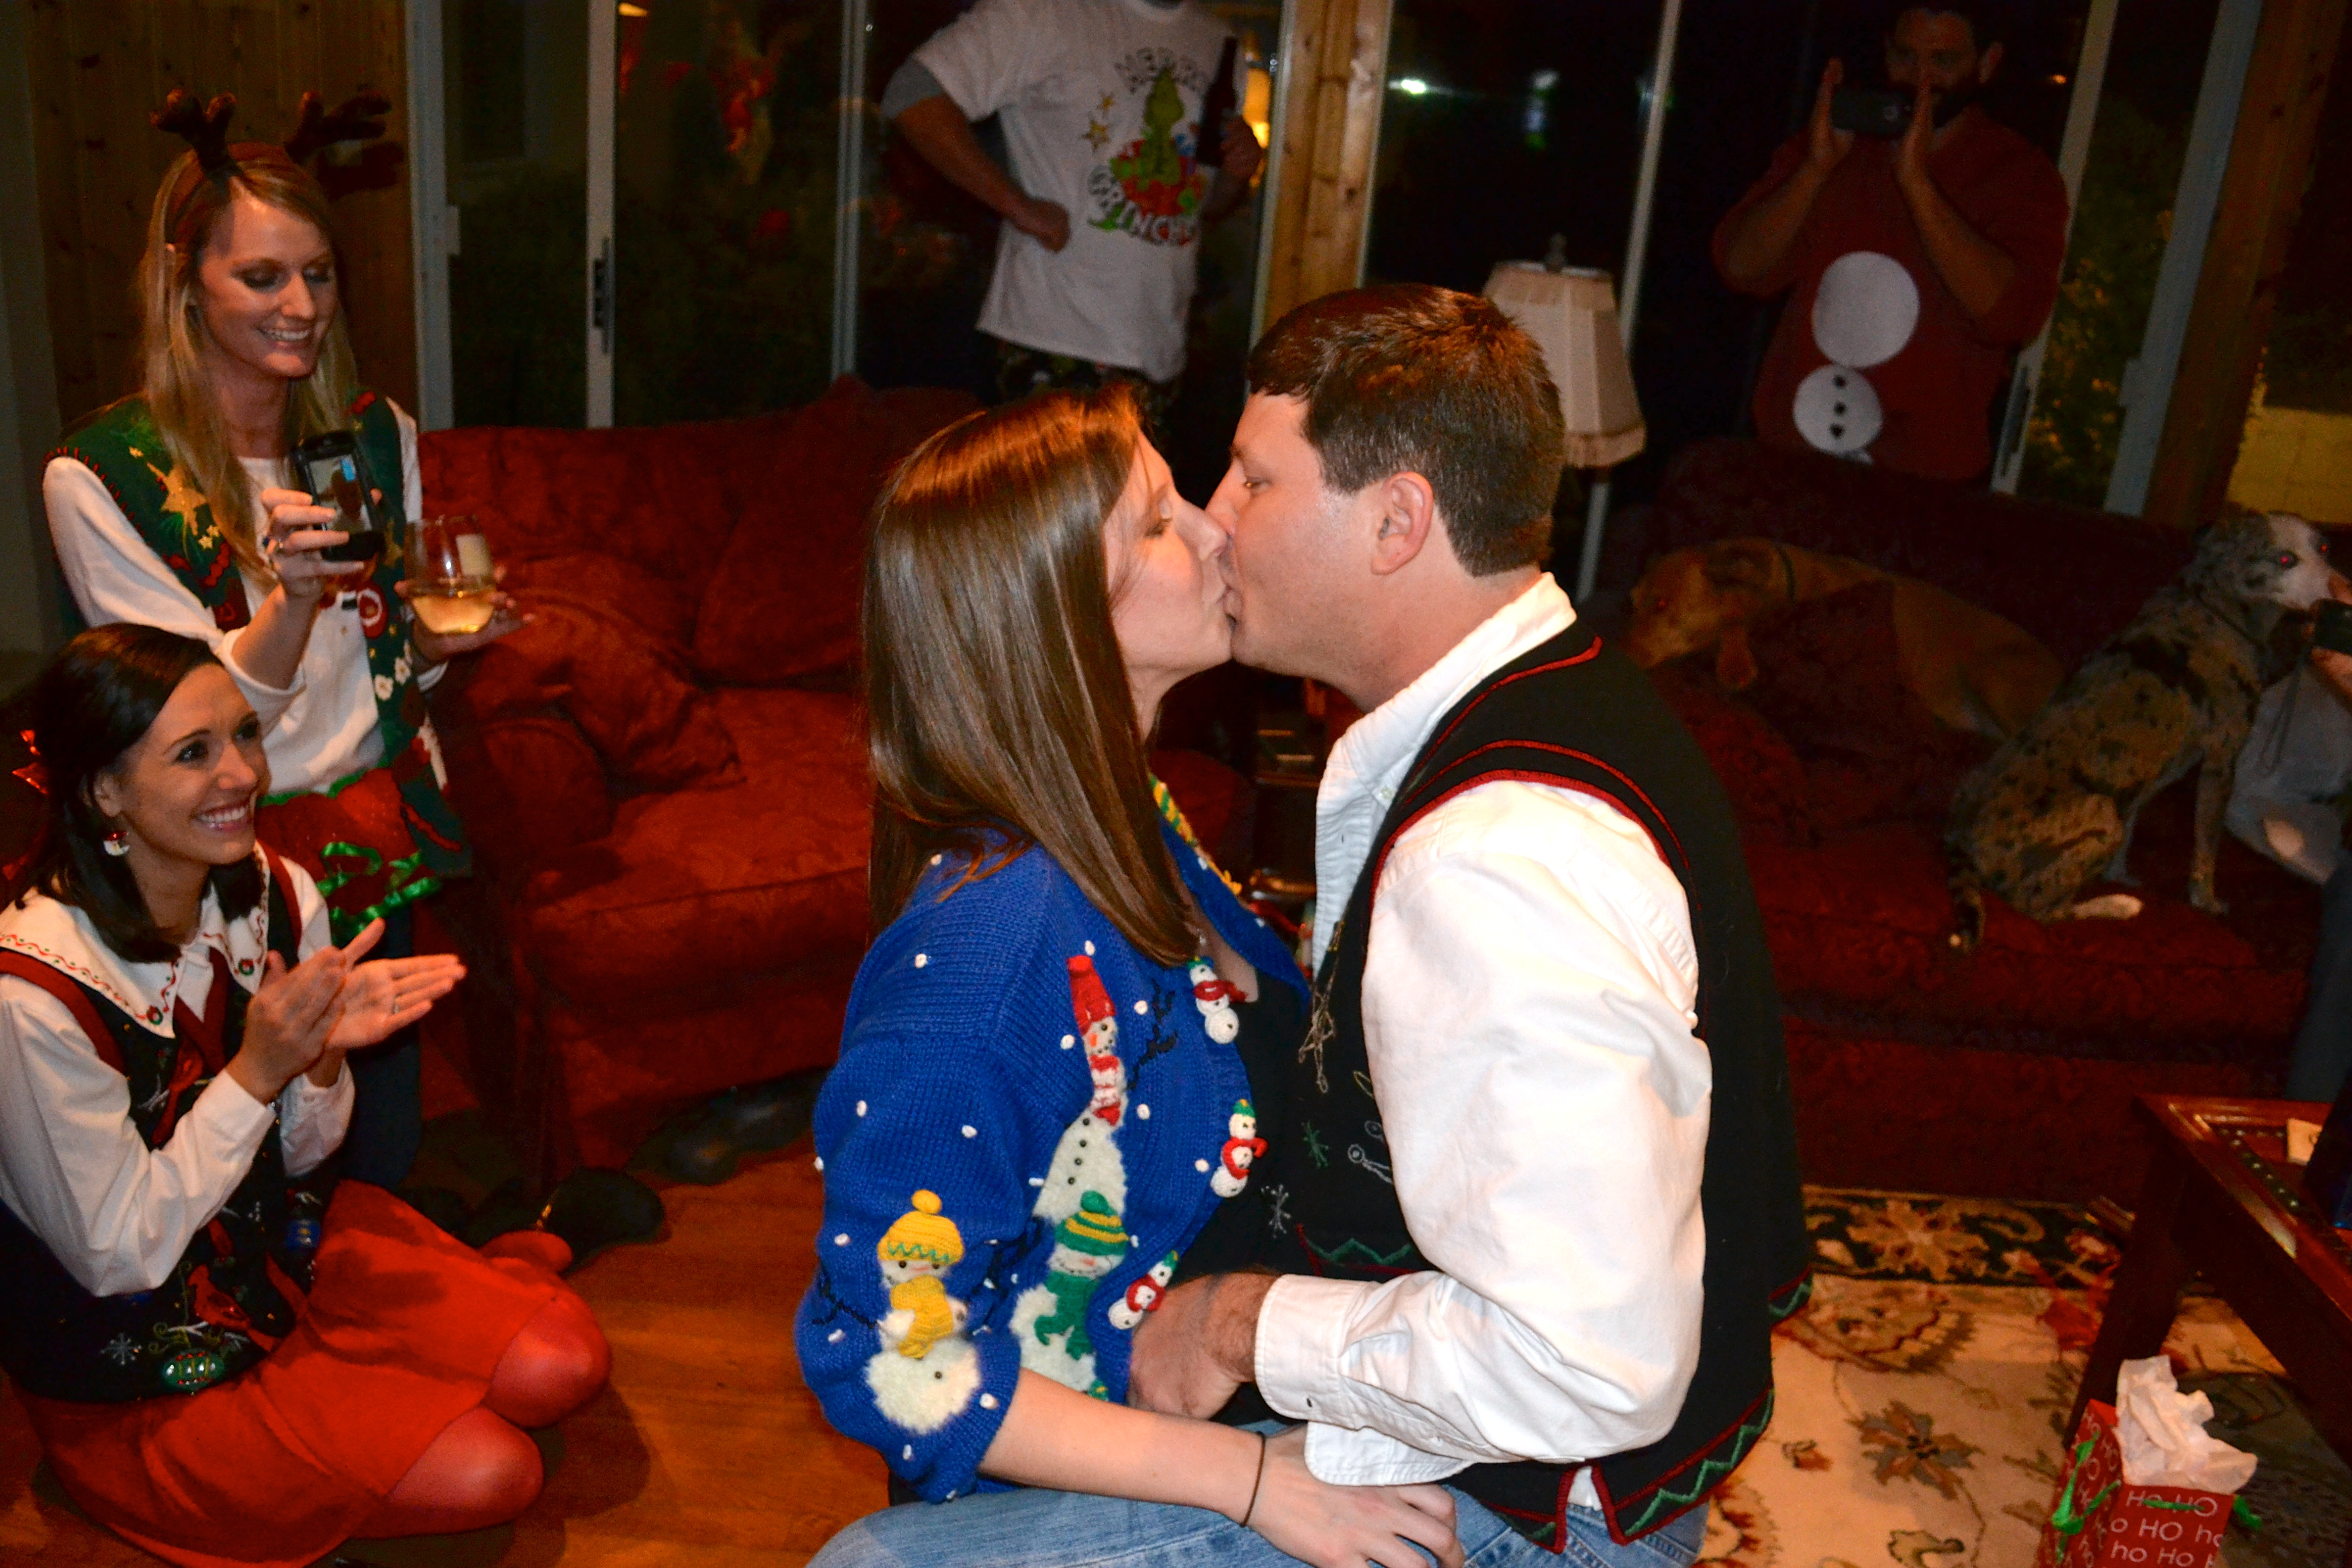 Image 5 of Meredith and Josh | Christmas Party Proposal